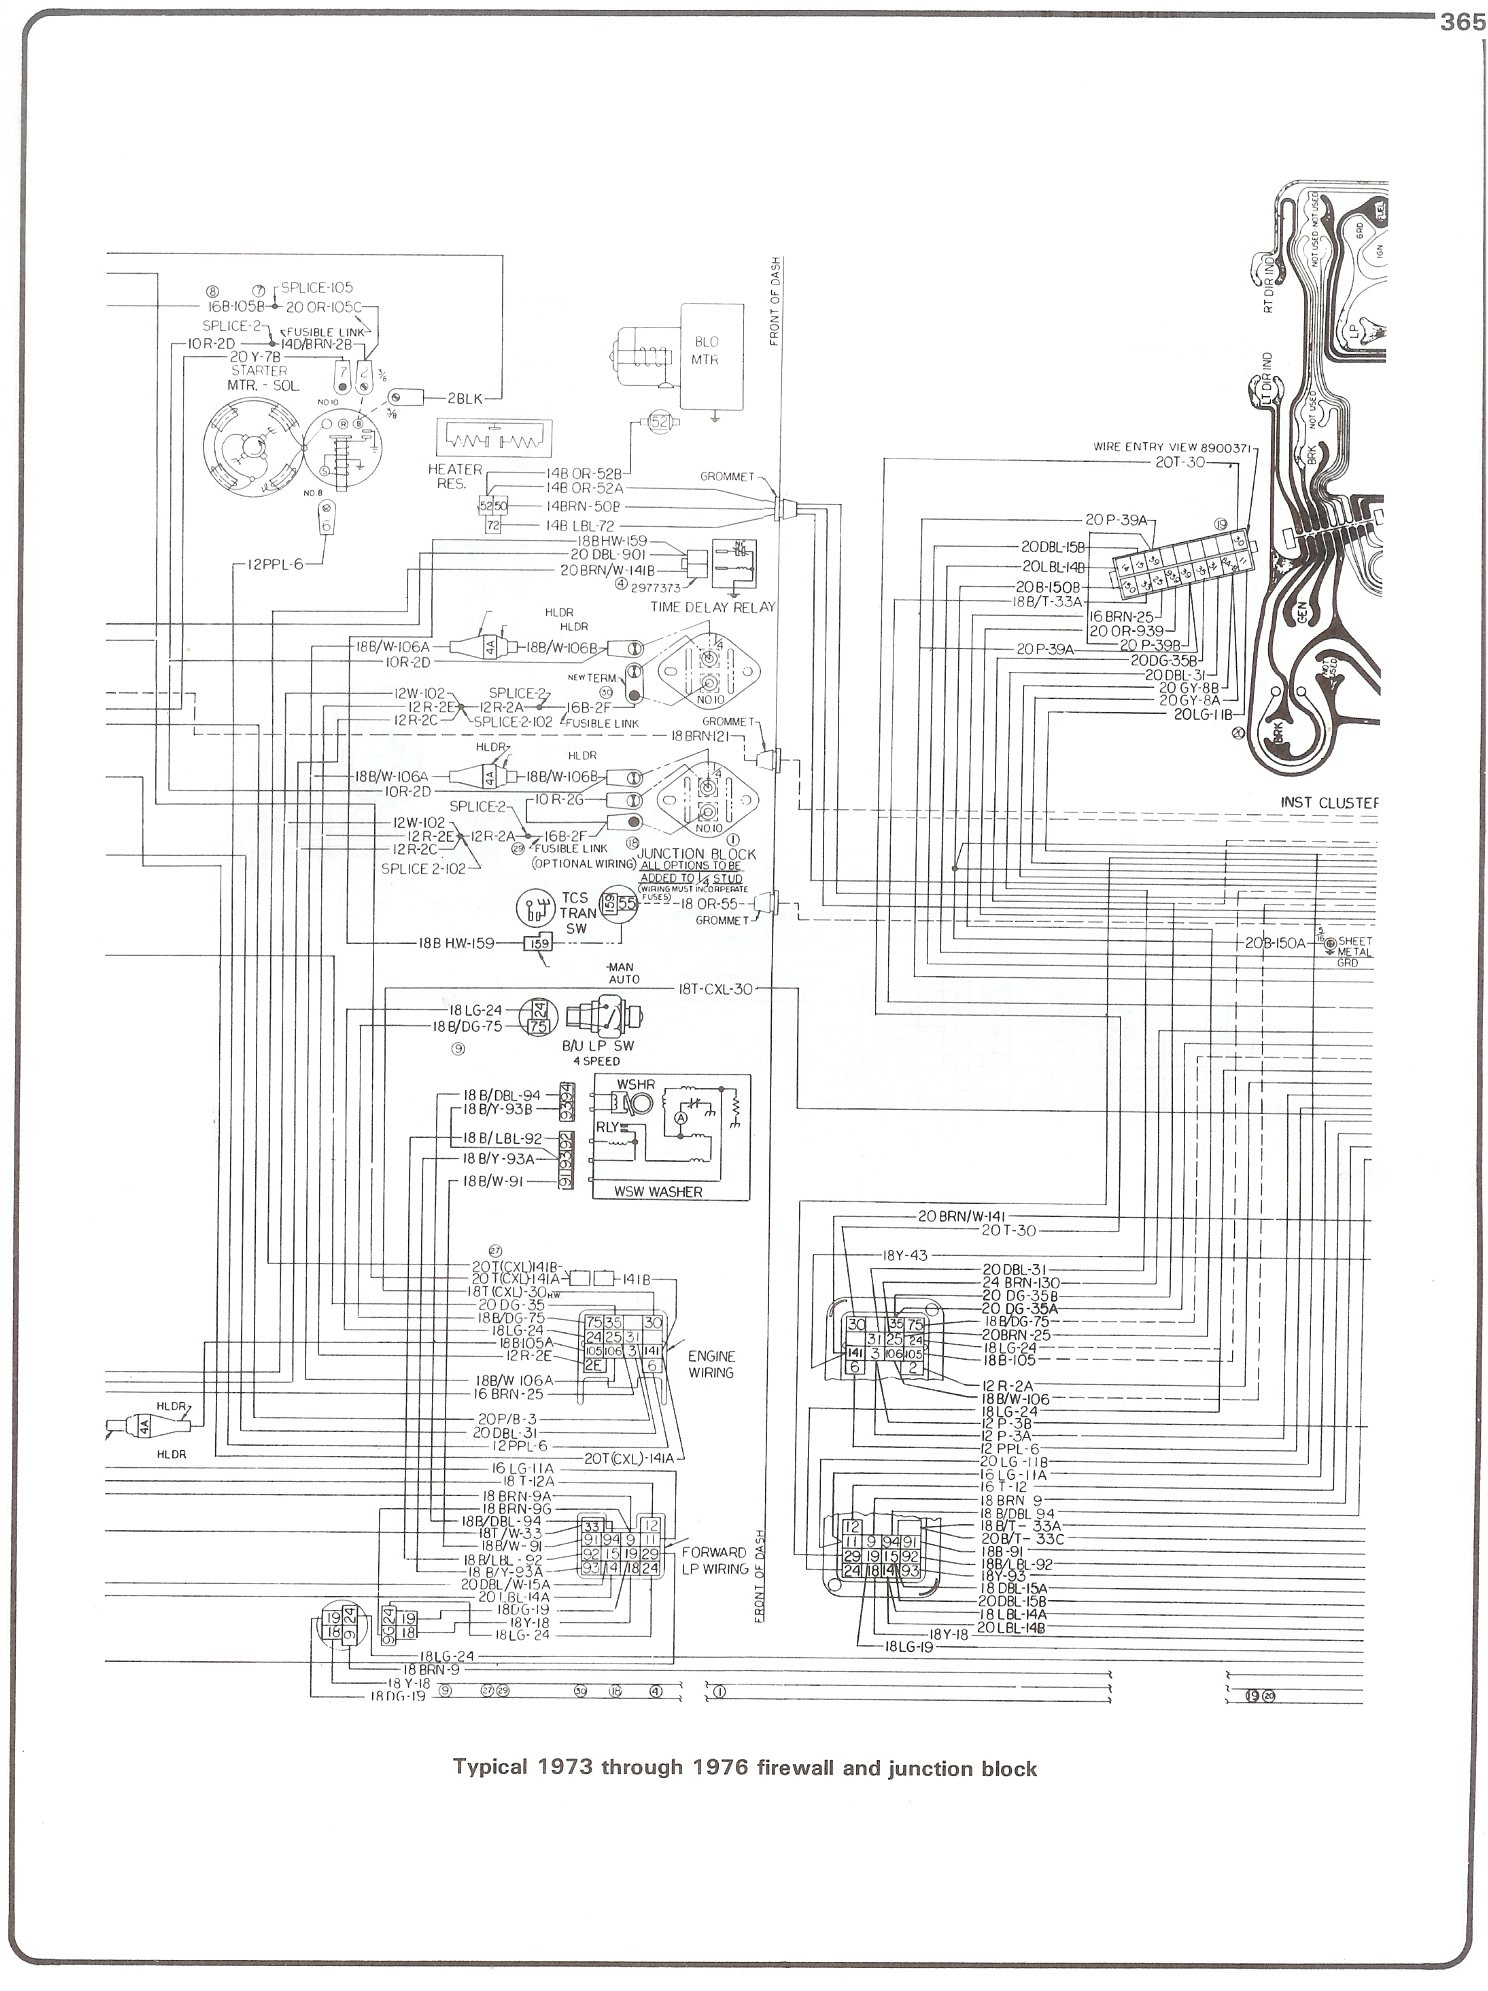 73 76_firewall_junct complete 73 87 wiring diagrams 1984 chevy truck wiring diagrams at edmiracle.co